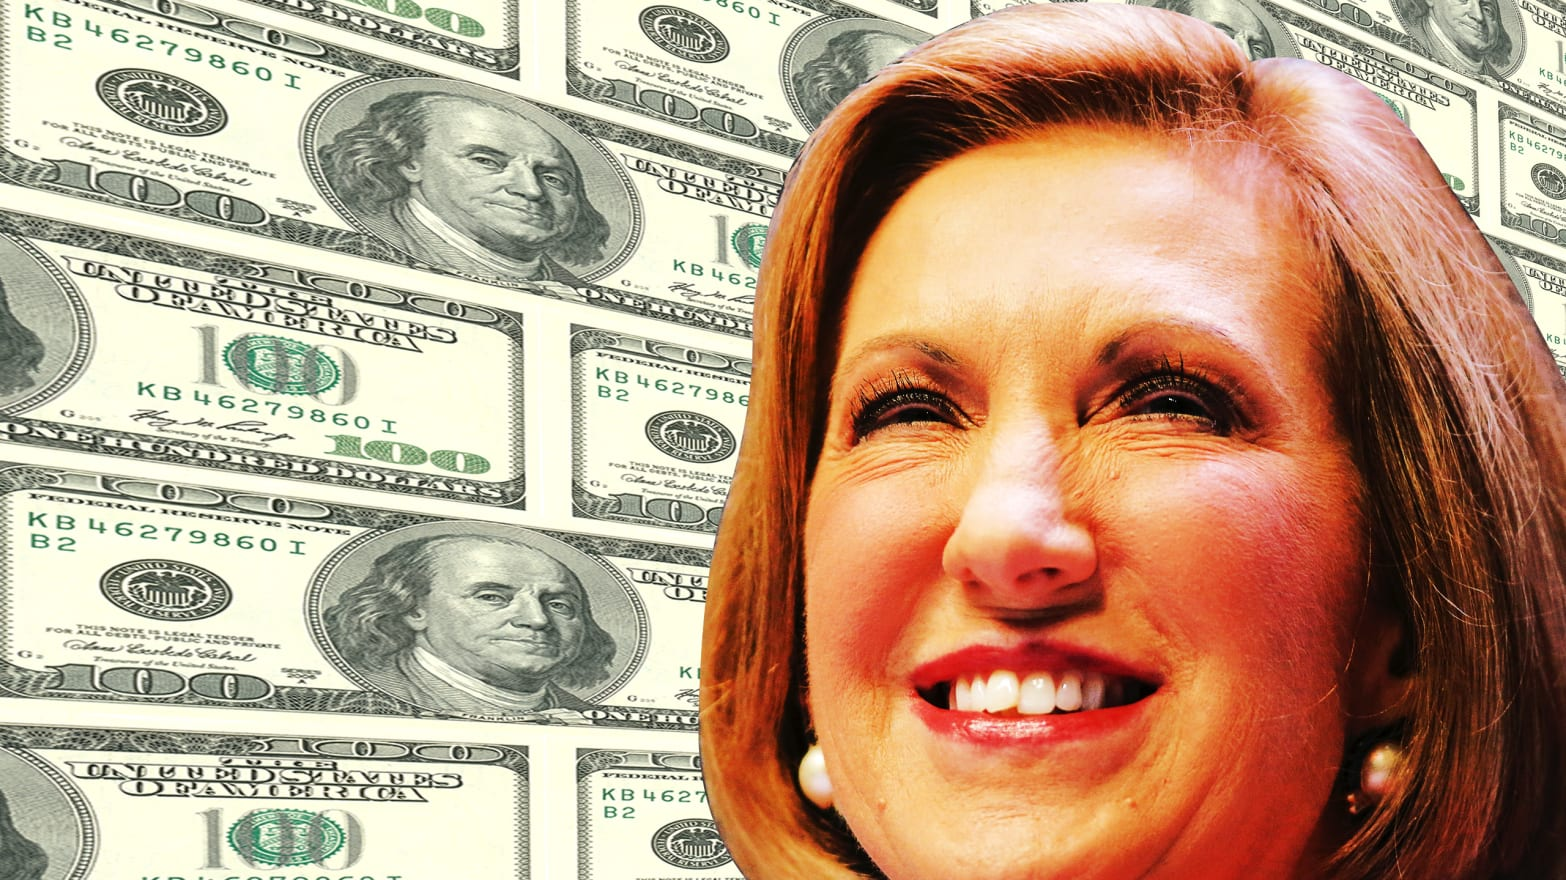 Carly Fiorina's $4 Billion Job Scam at Hewlett-Packard